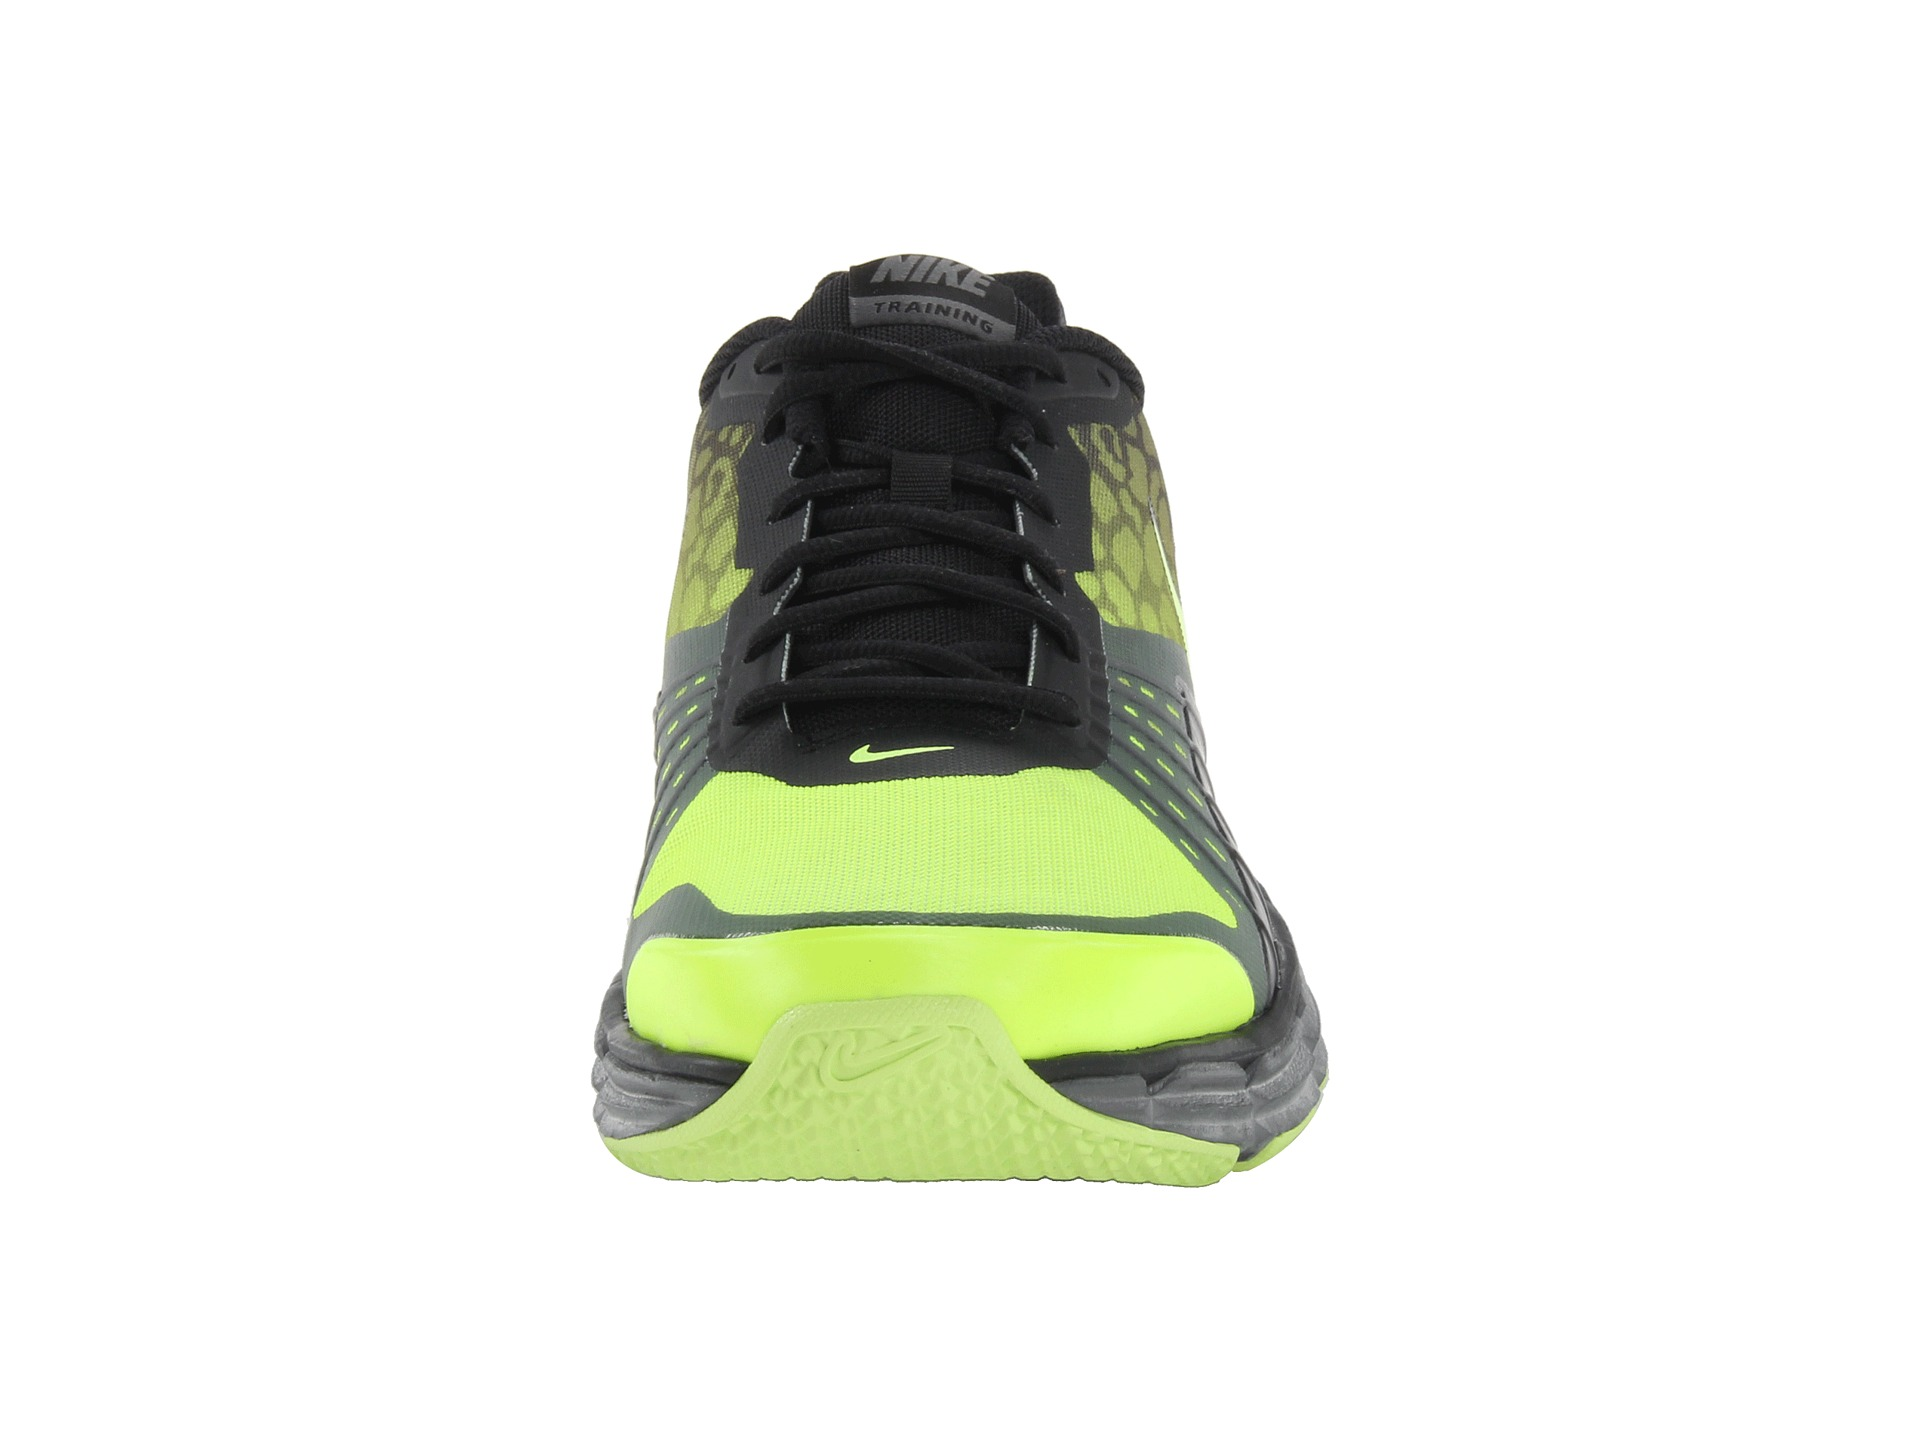 2601c067812d82 ... Mens Shoes Size 9cbba  new style bc6eb tr-5有关以下物品的详细资料 nike dual fusion  tr ...